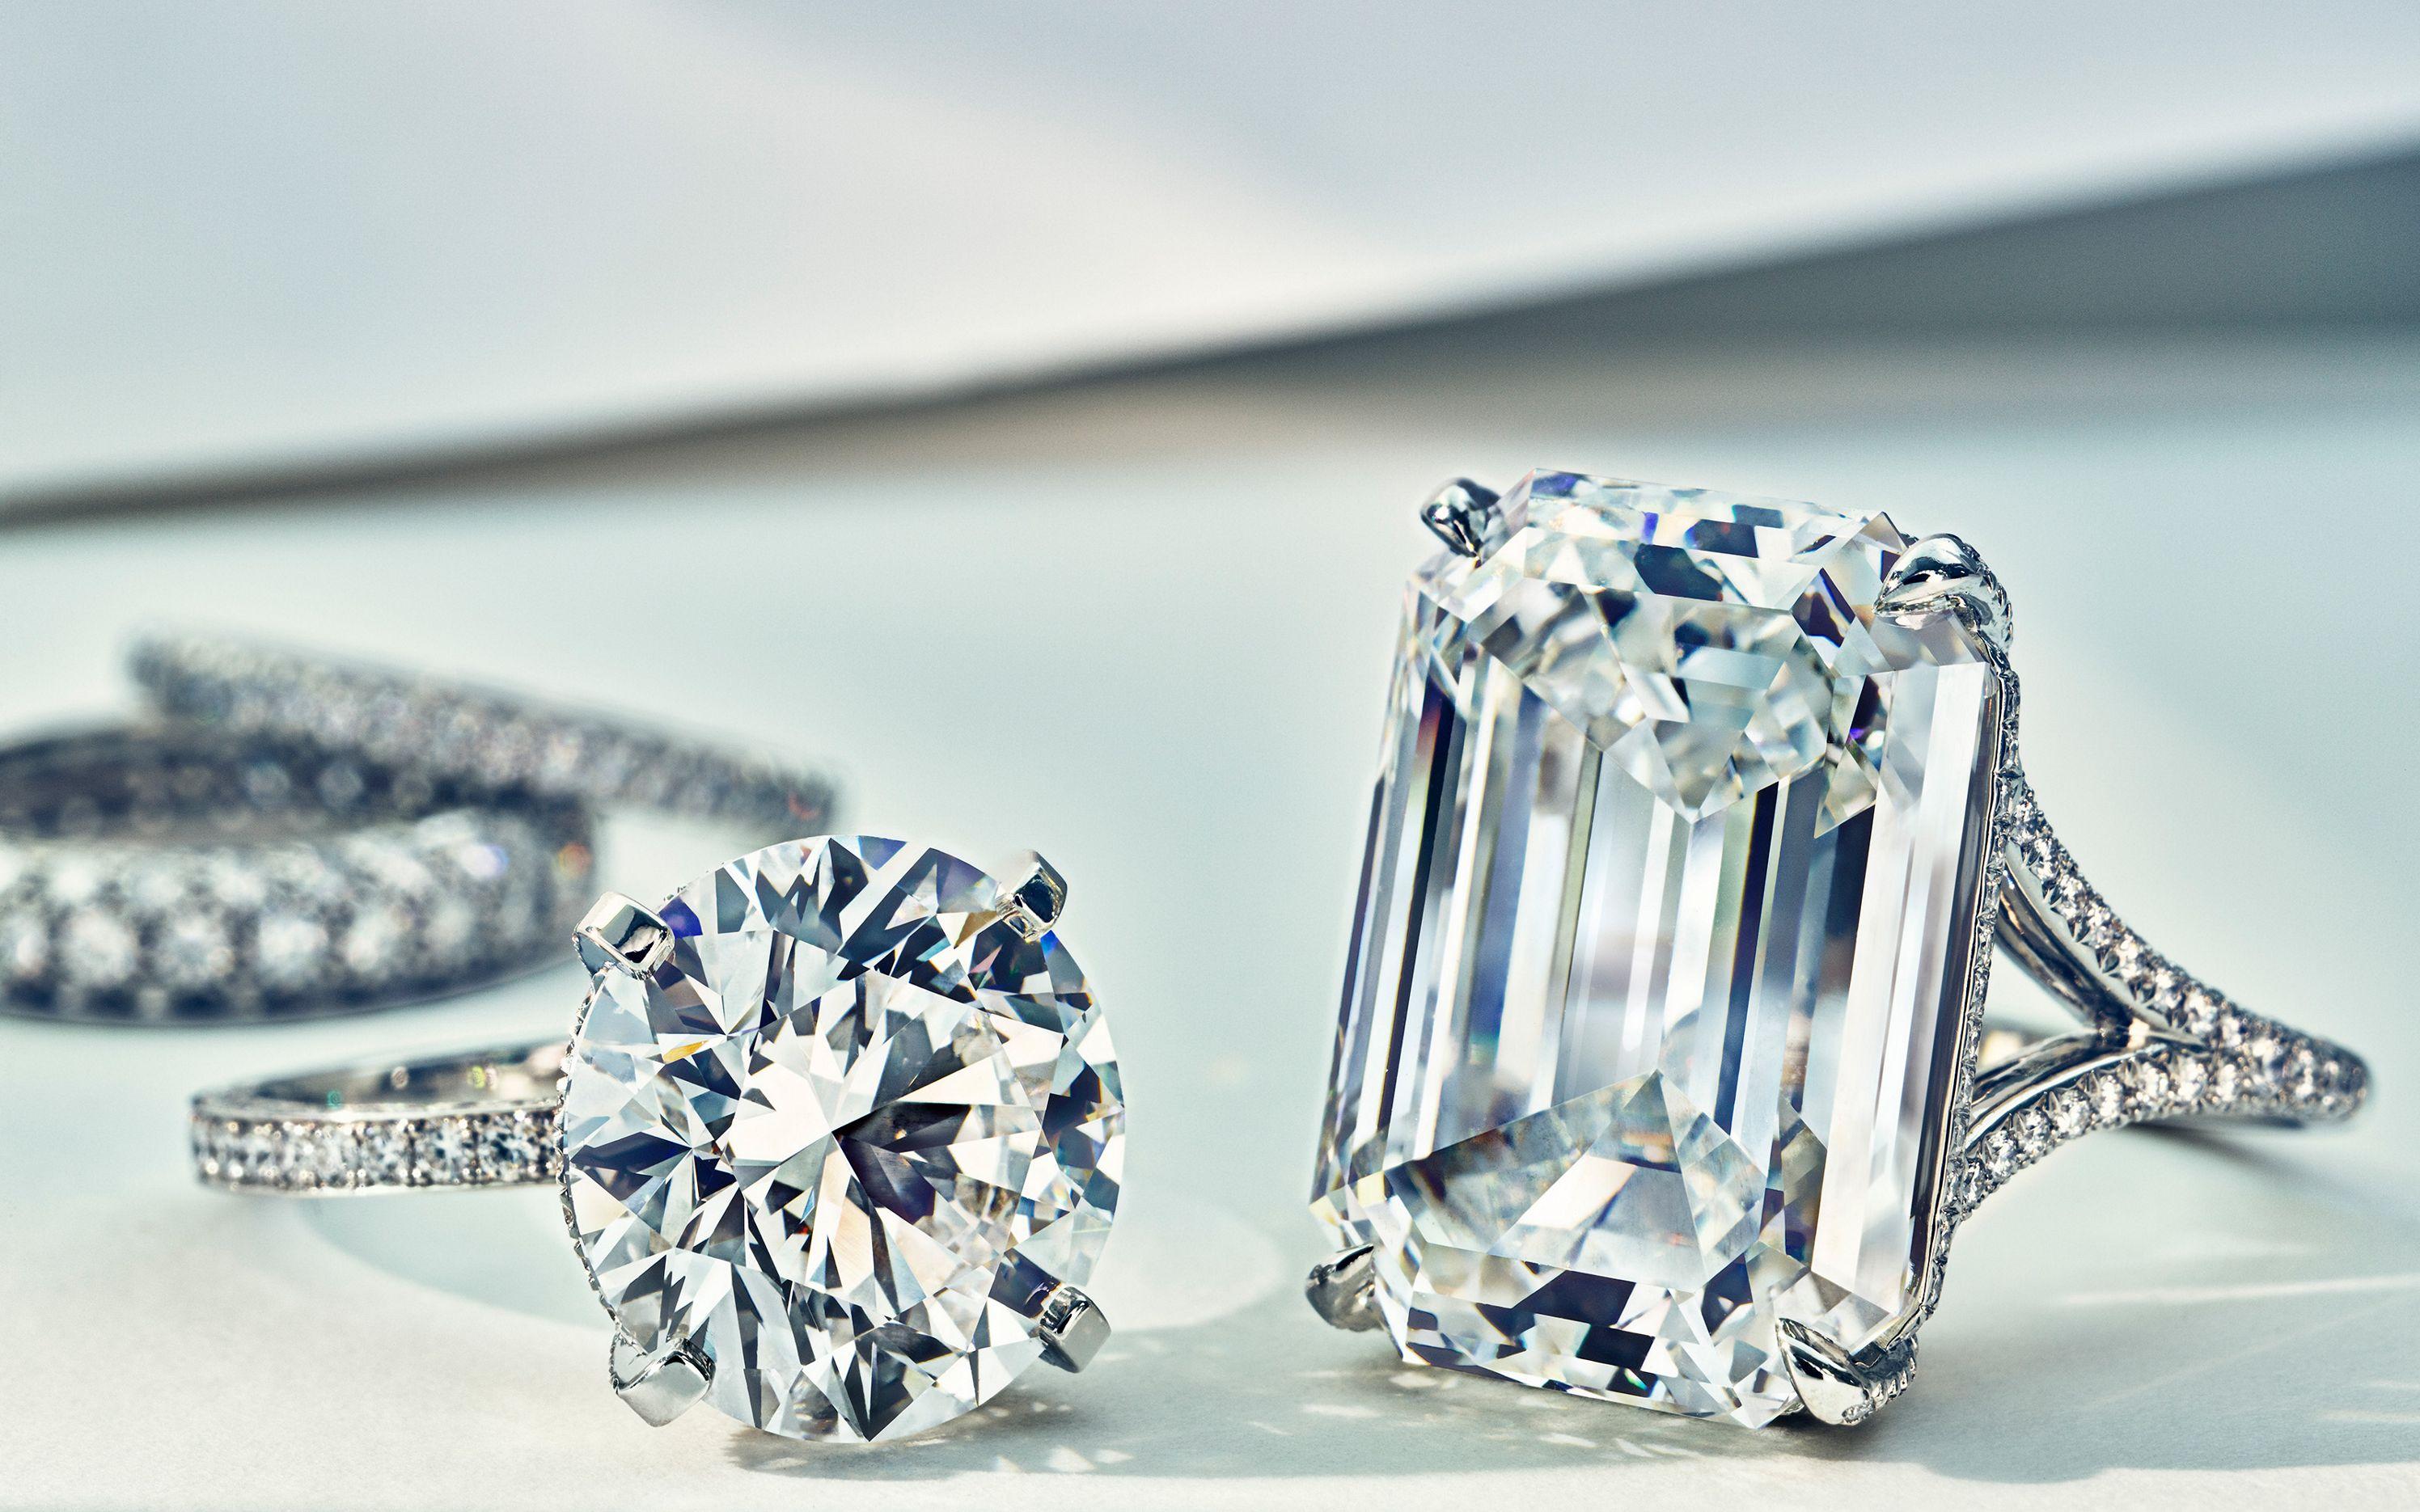 Tiffany & Co. responsibly sourced diamonds